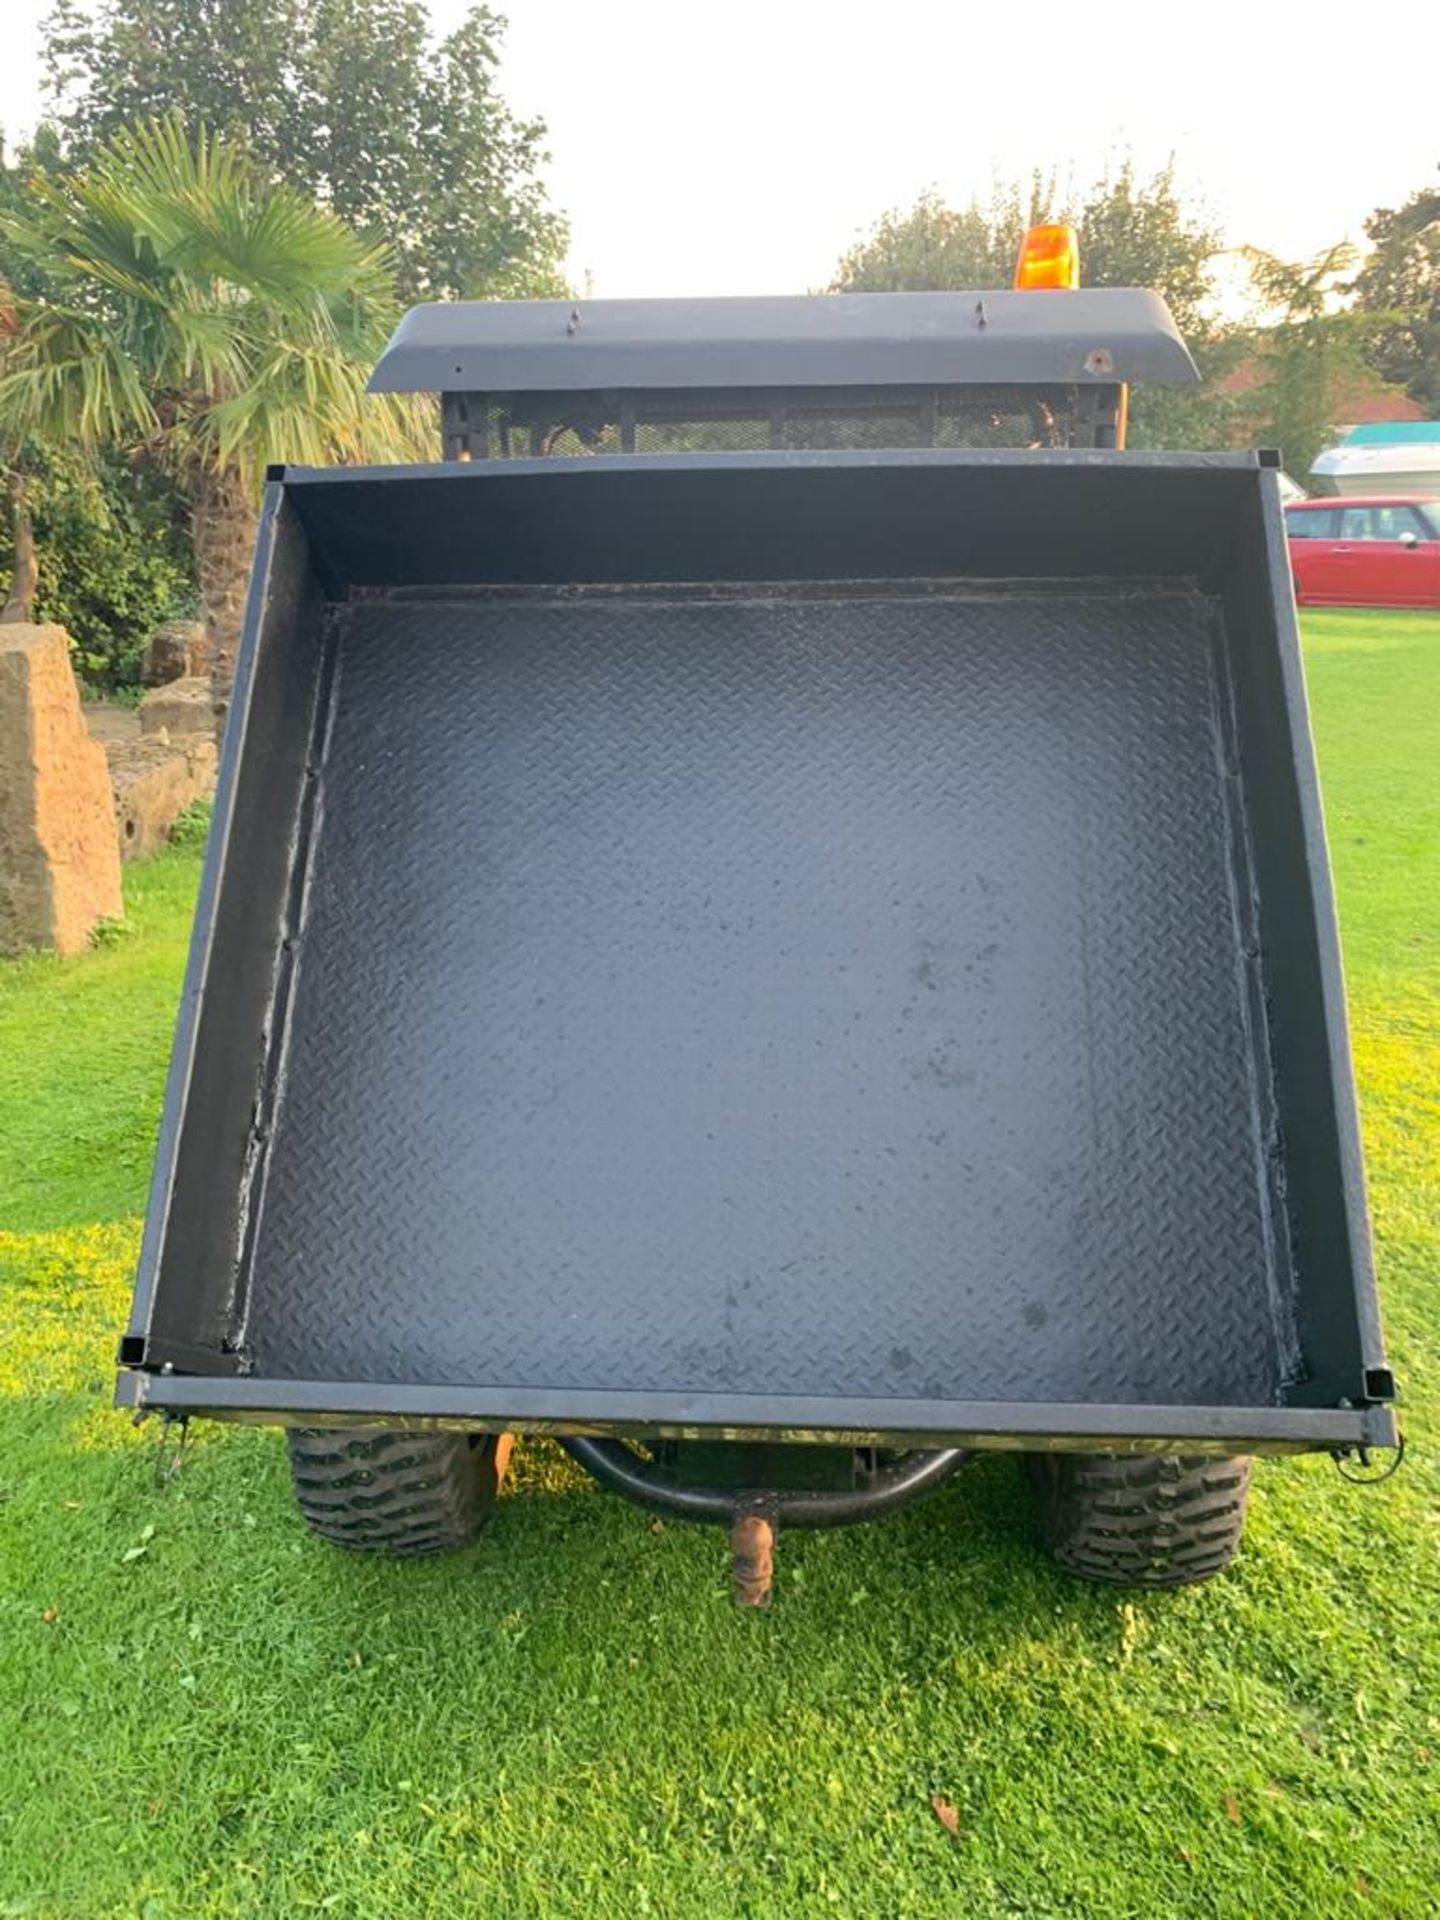 KUBOTA 4X4 DIESEL HYDRAULIC TIPPER BUGGY, RUNS, WORKS AND TIPS *PLUS VAT* - Image 8 of 22